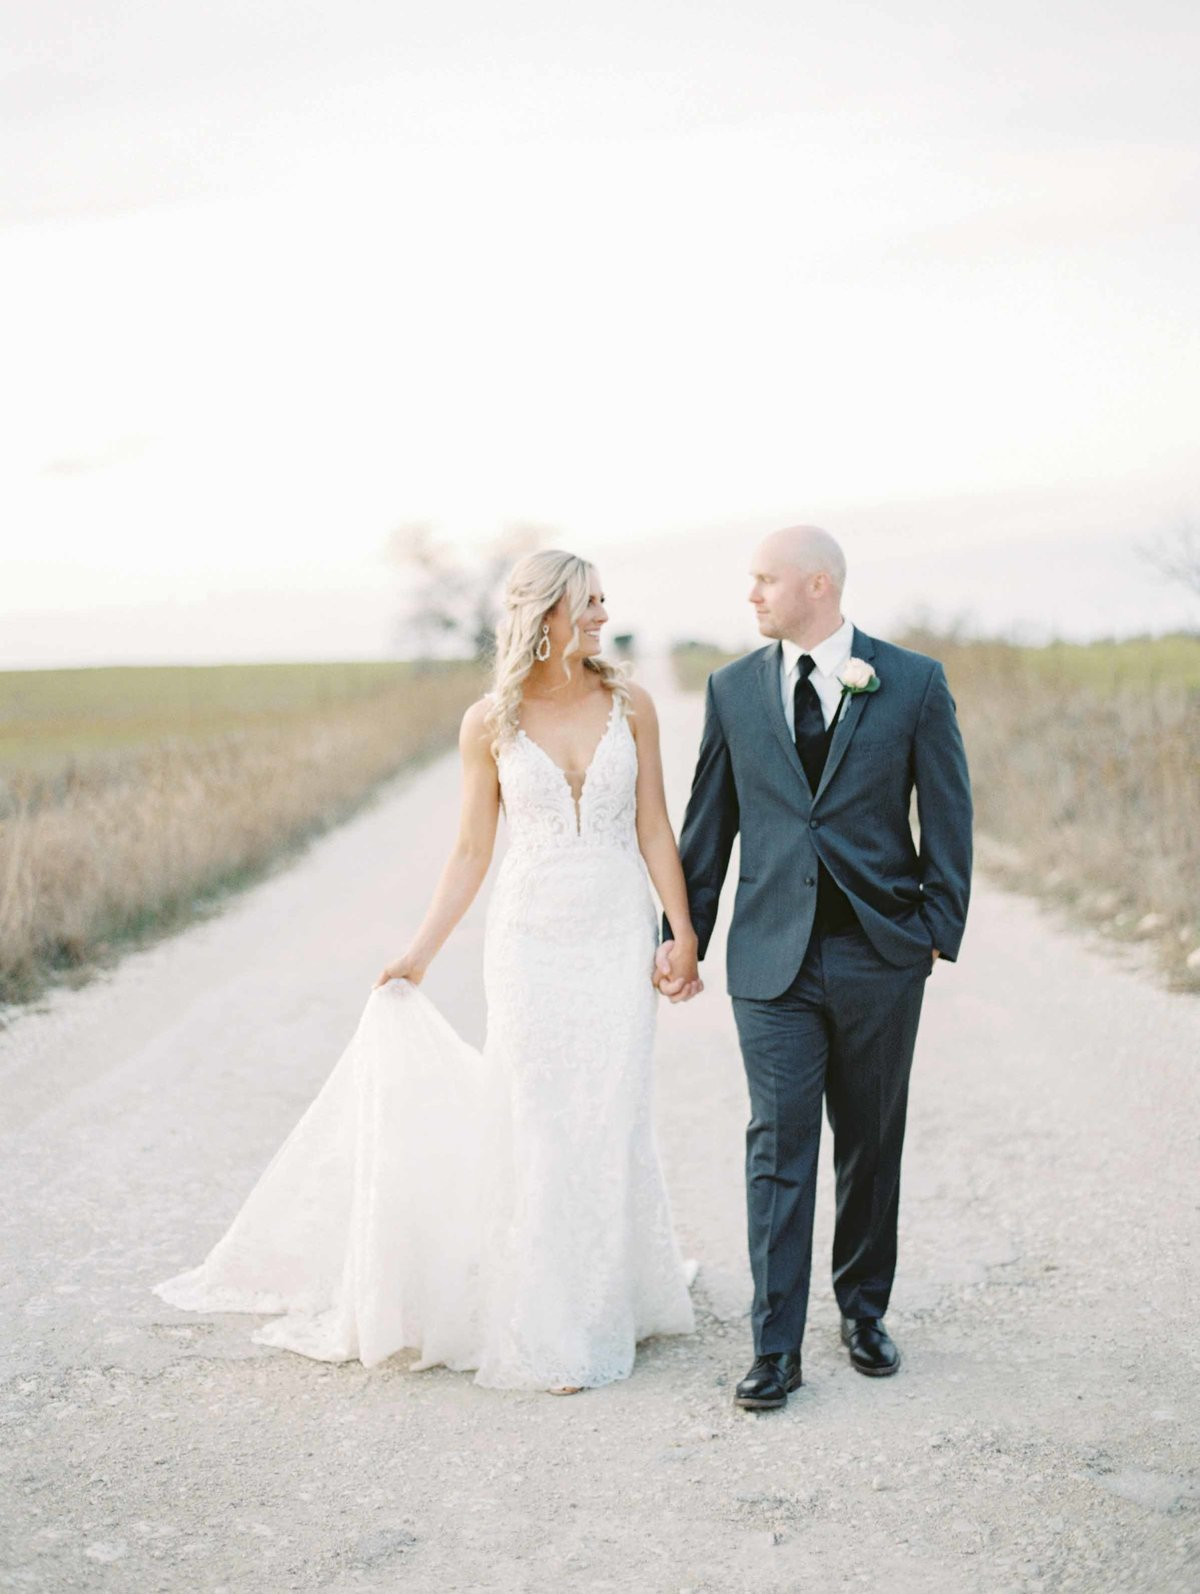 Angel_owens_photography_wedding86